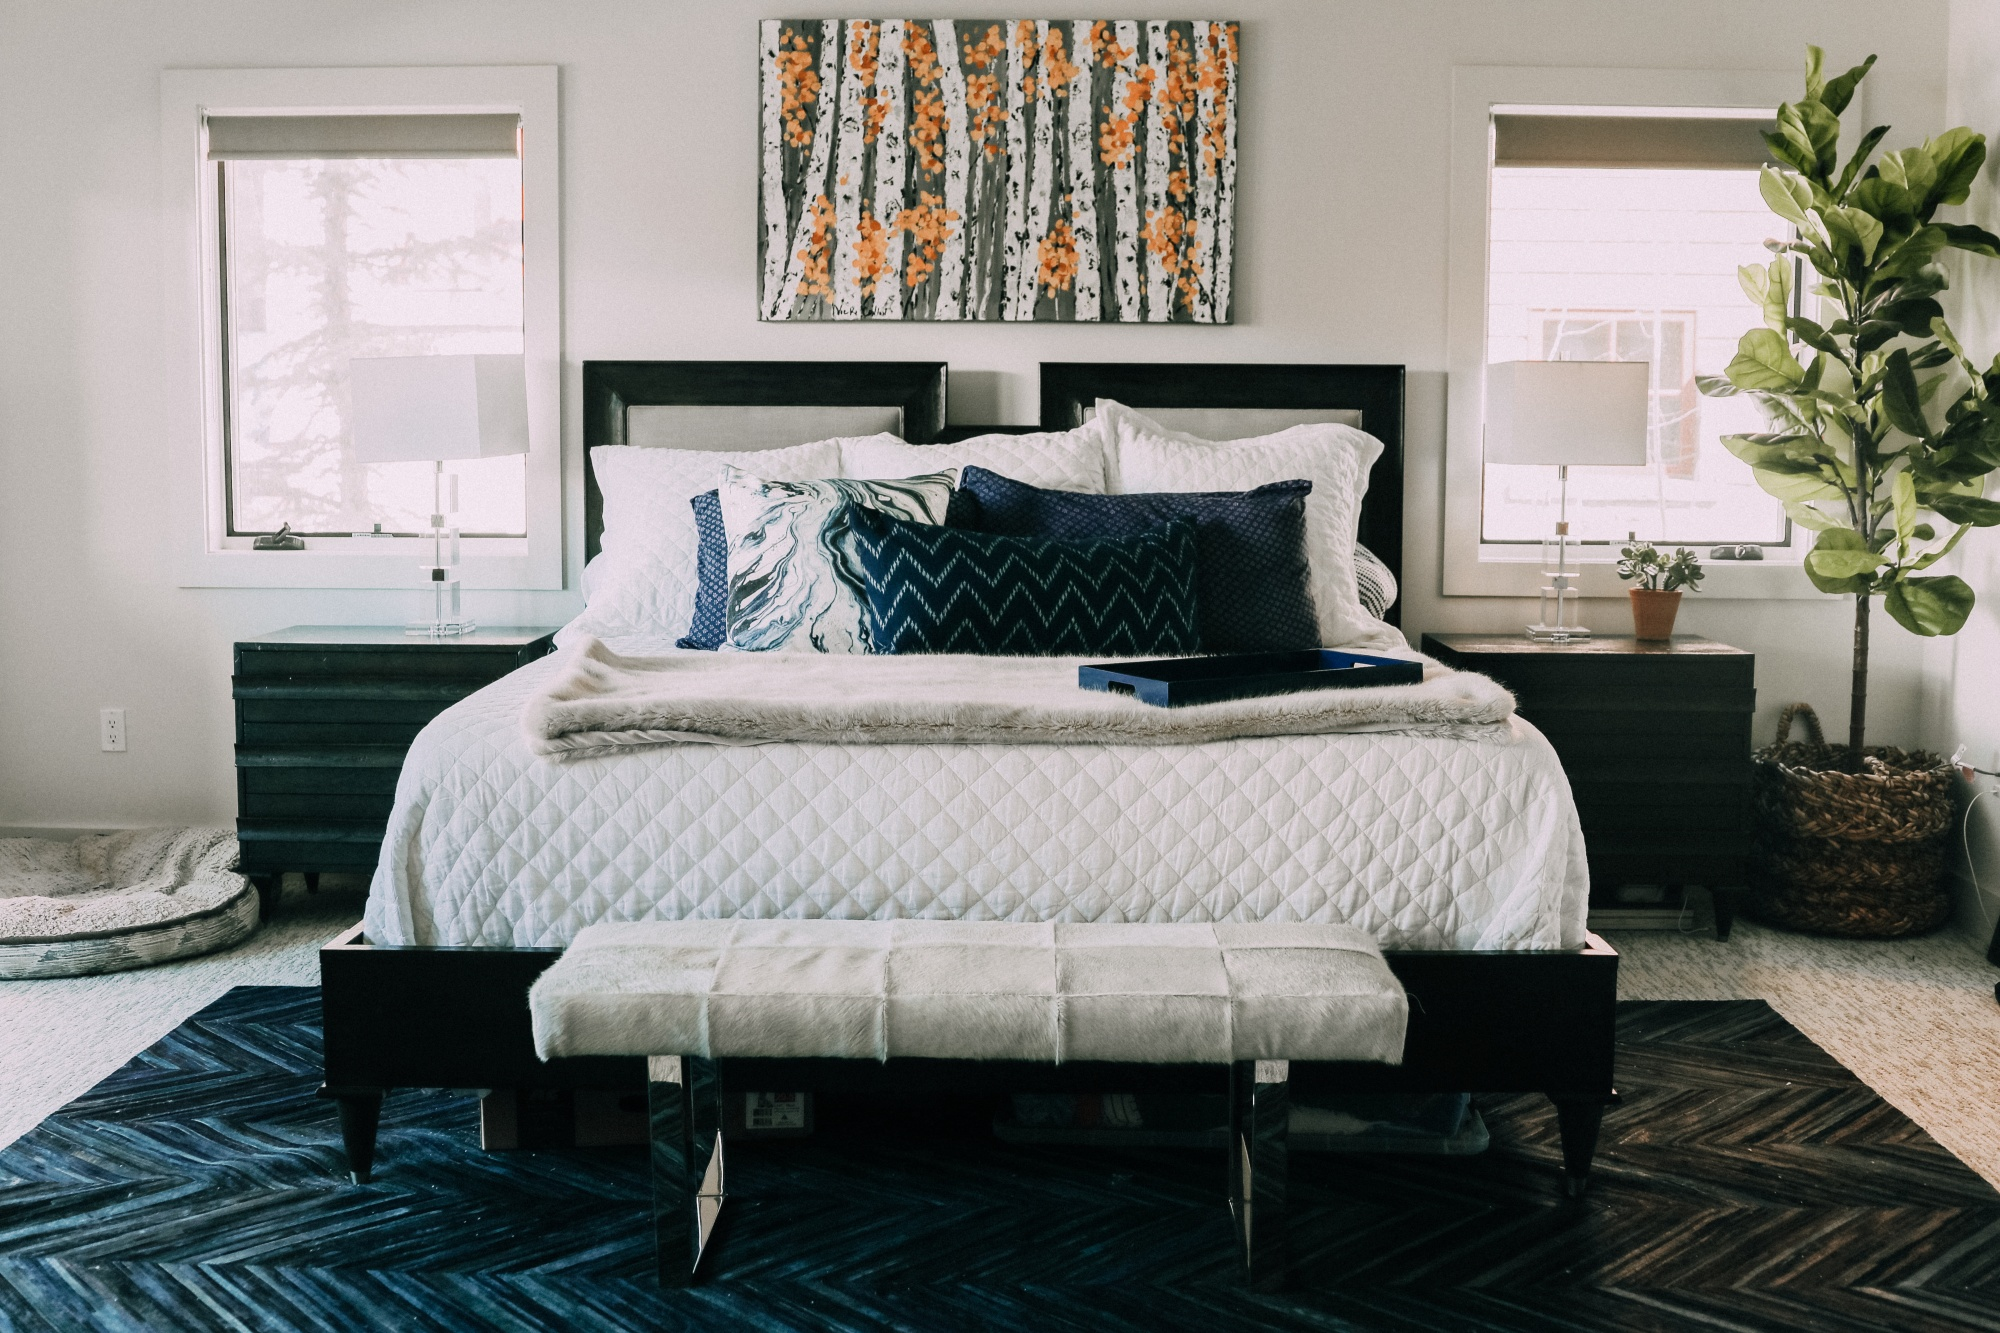 end of bed bedroom benches, white and silver One Kings Lane cowhide bench in master bedroom